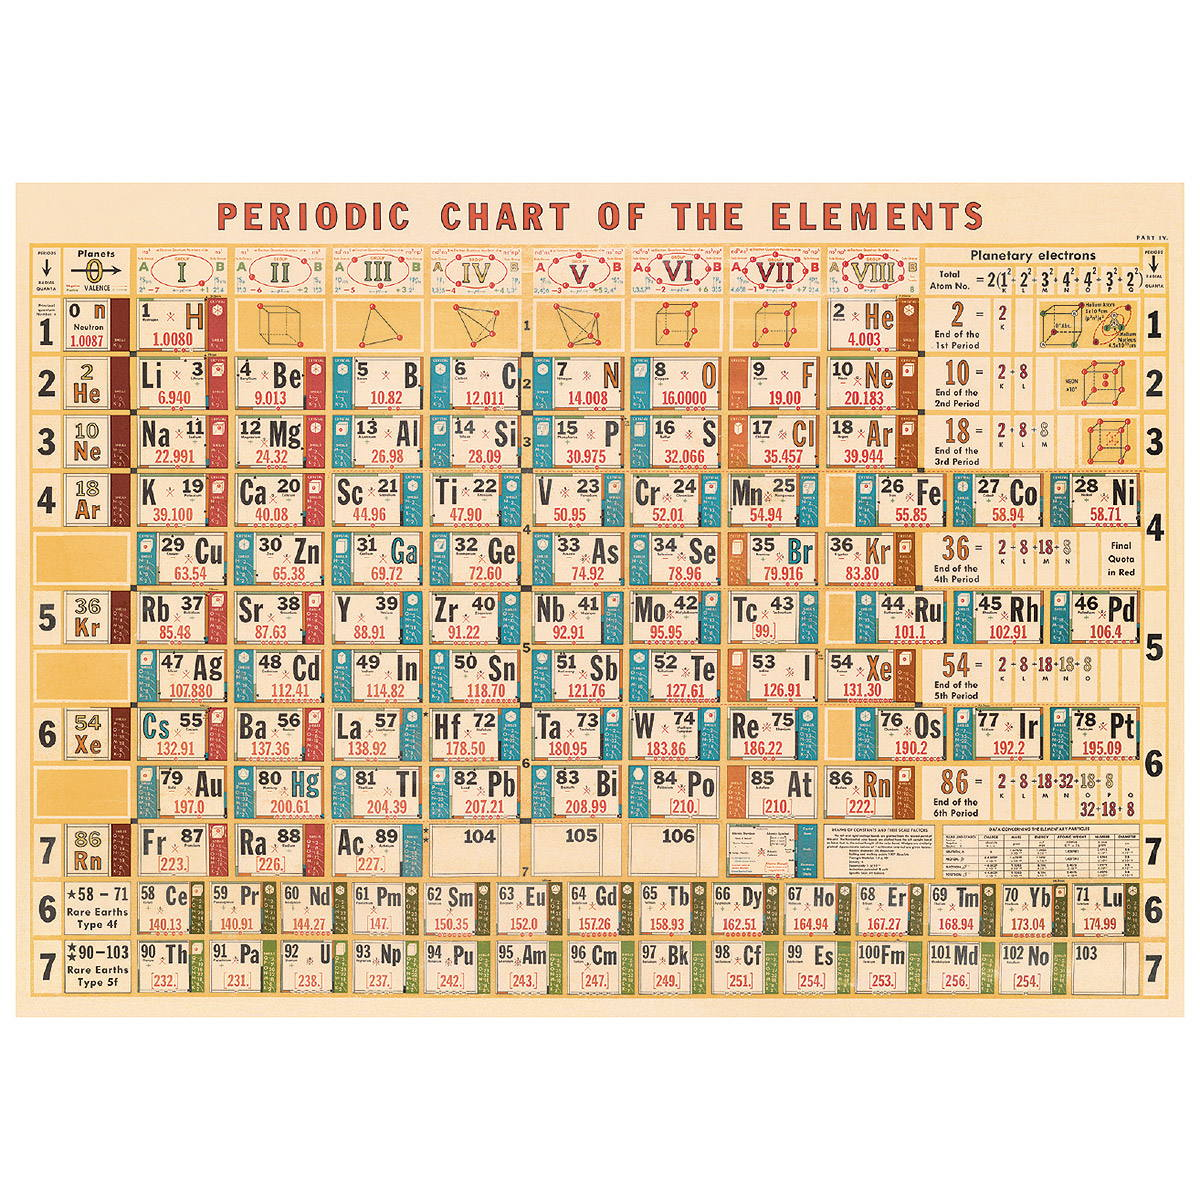 Periodic table chart driverlayer search engine for 1 20 elements on the periodic table